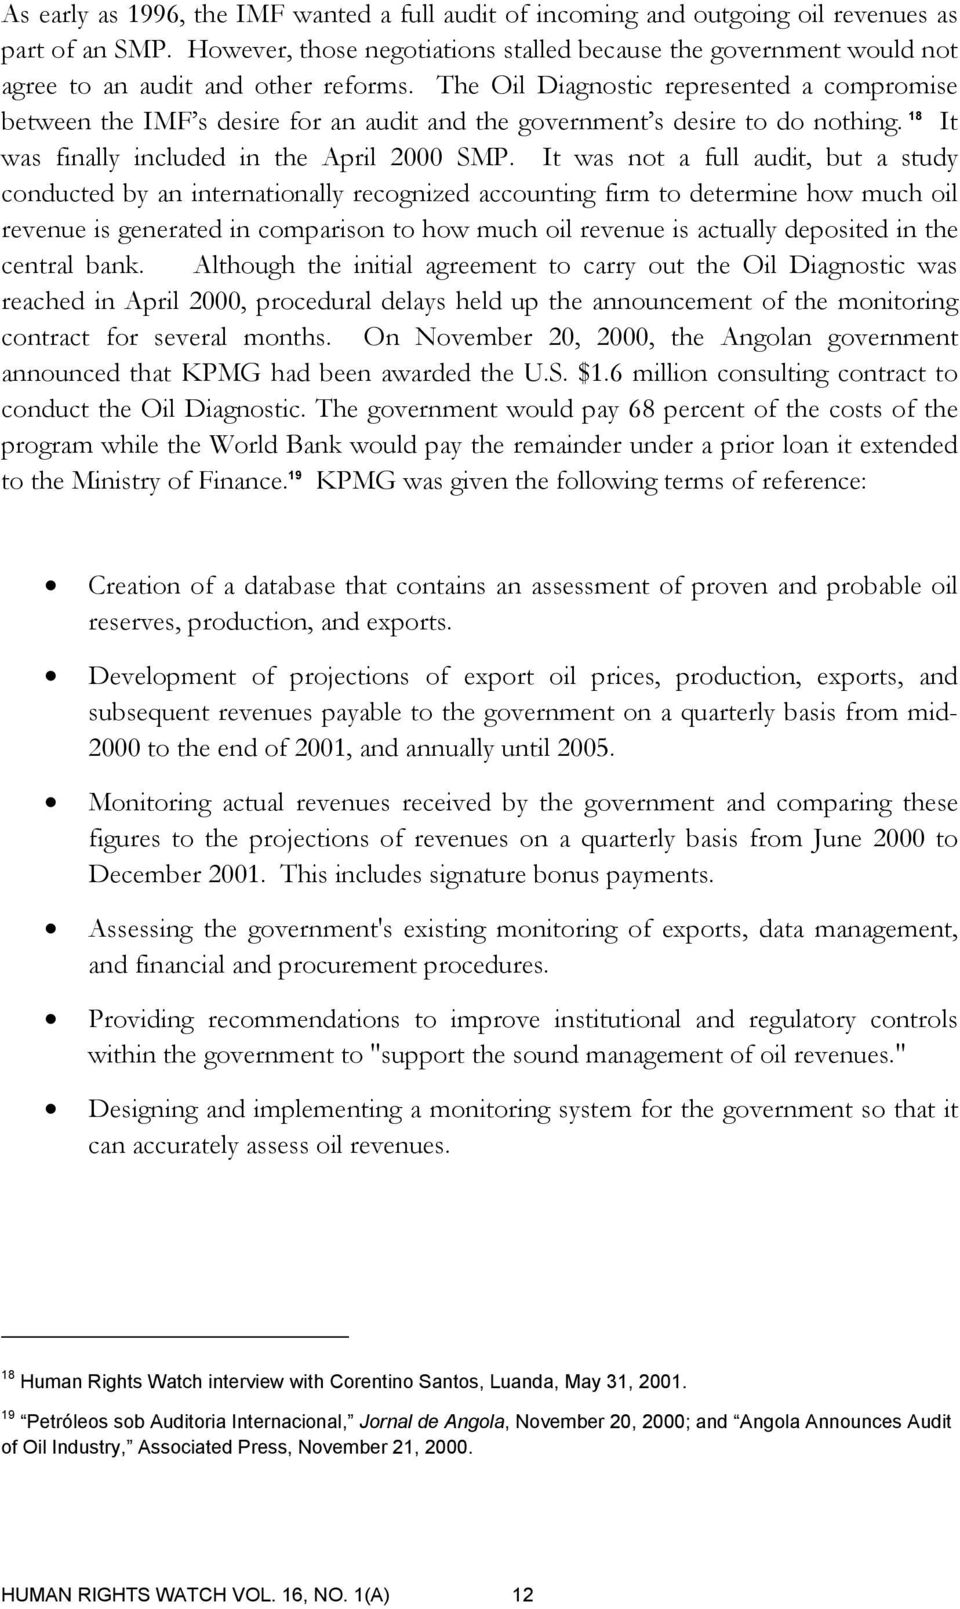 The Oil Diagnostic represented a compromise between the IMF s desire for an audit and the government s desire to do nothing. 18 It was finally included in the April 2000 SMP.